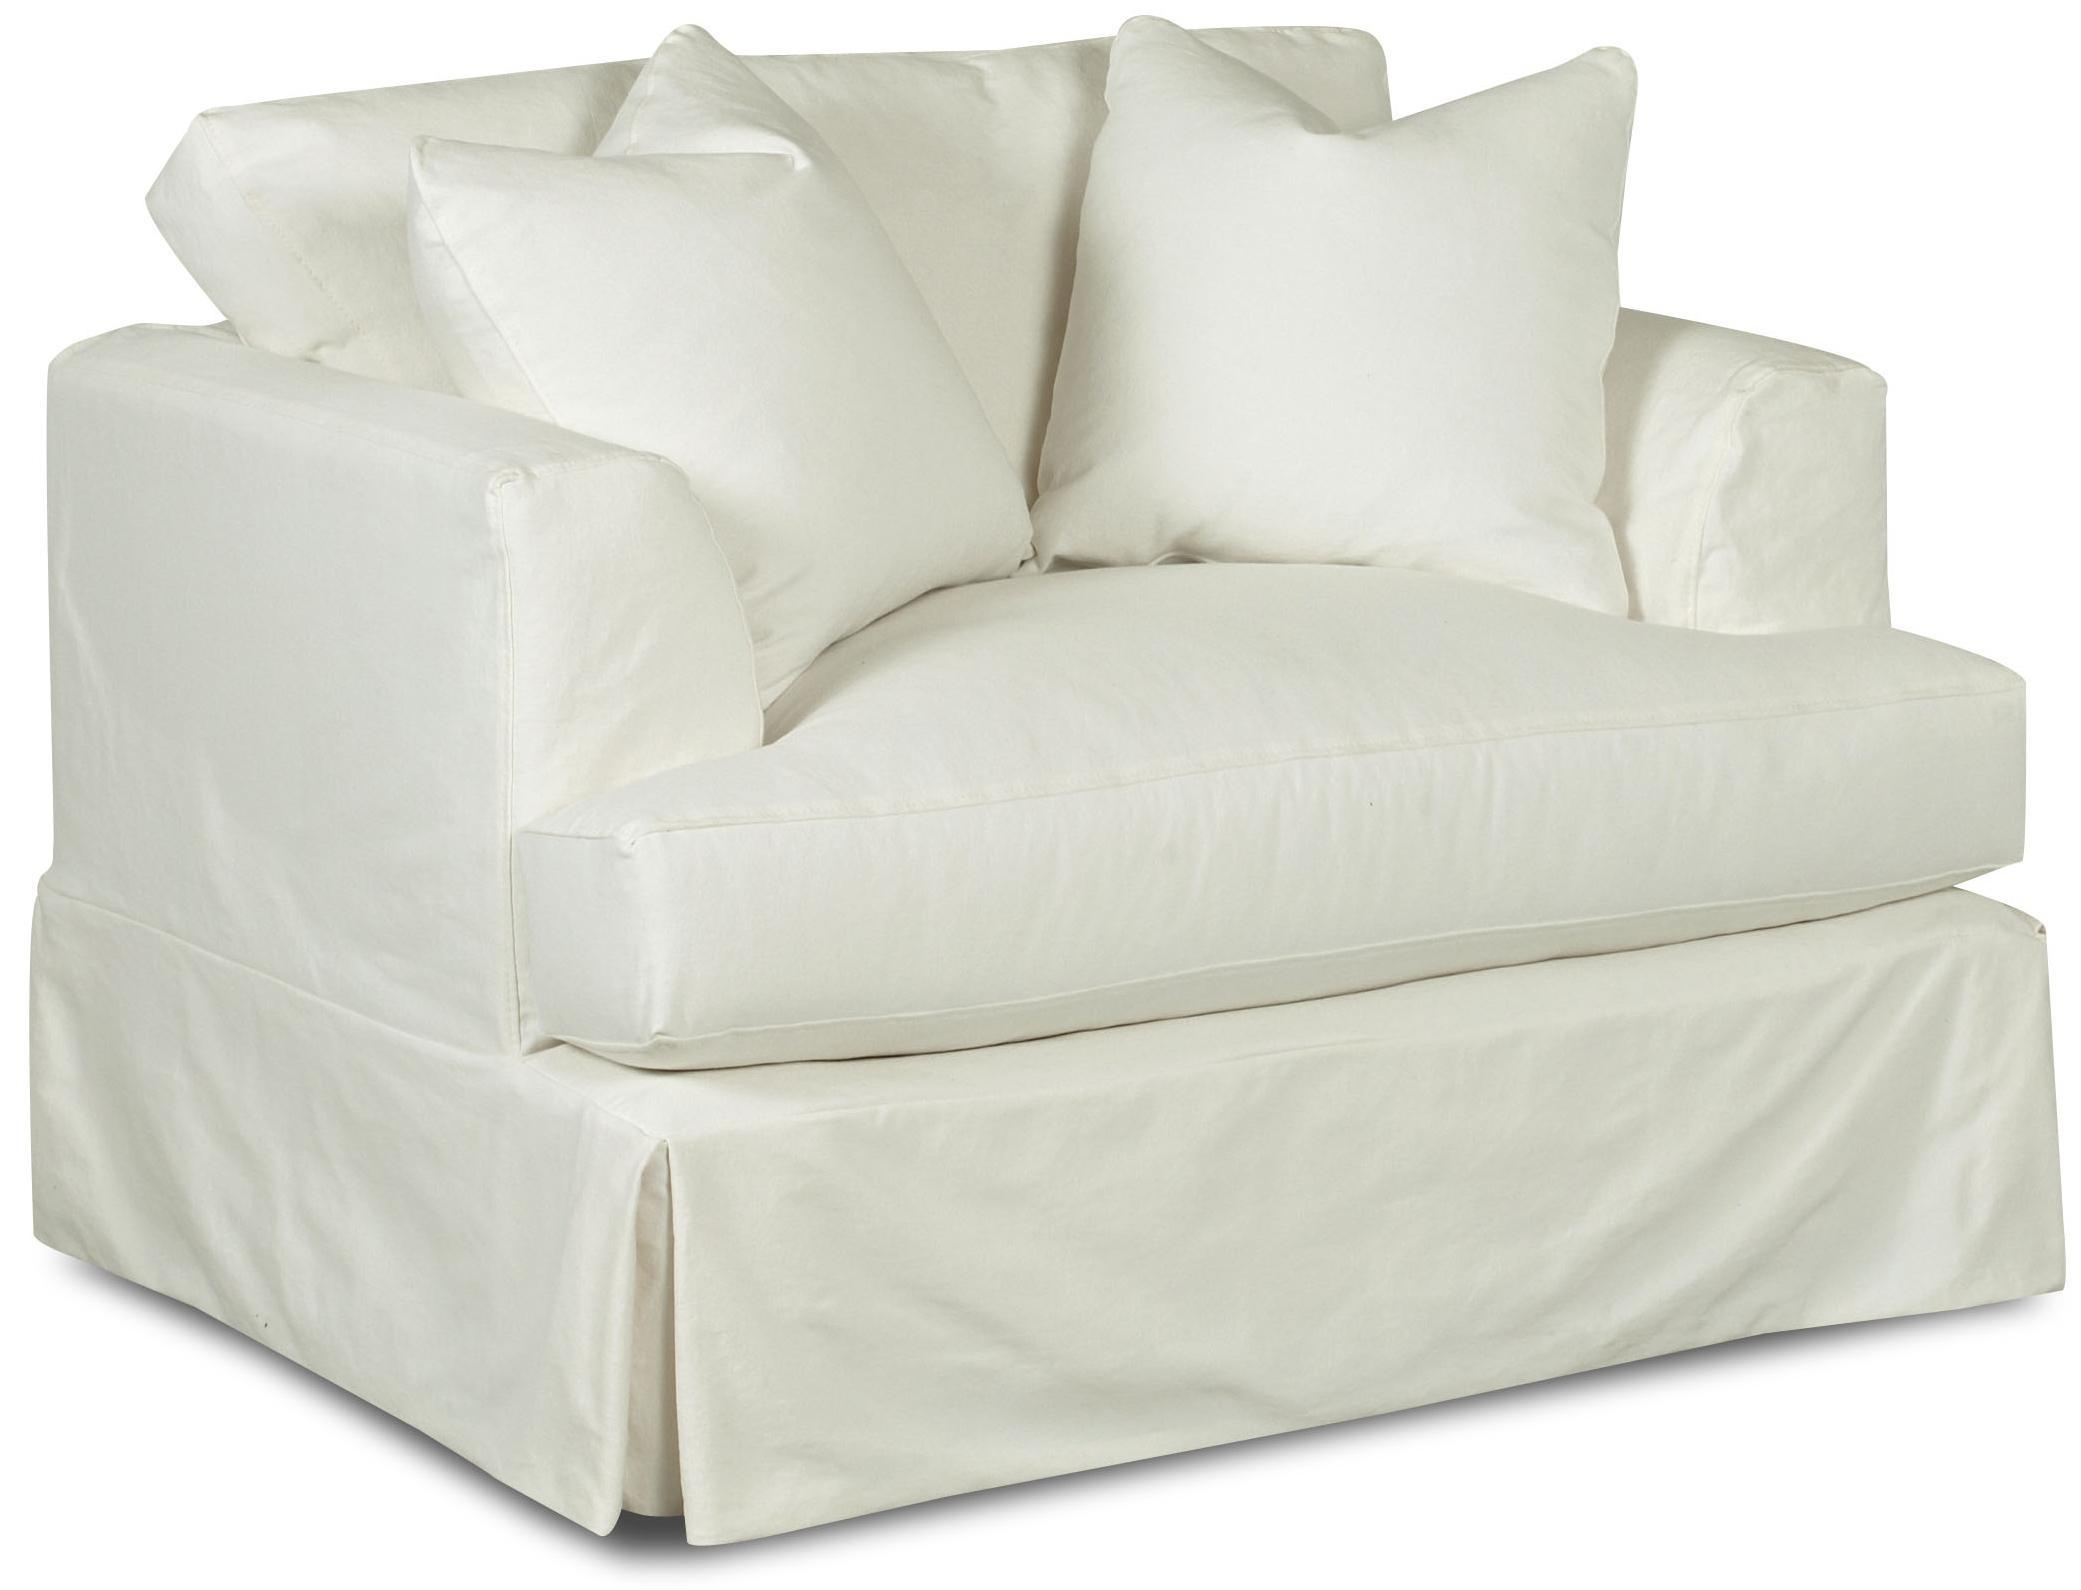 20 Collection of Sofa and Chair Covers